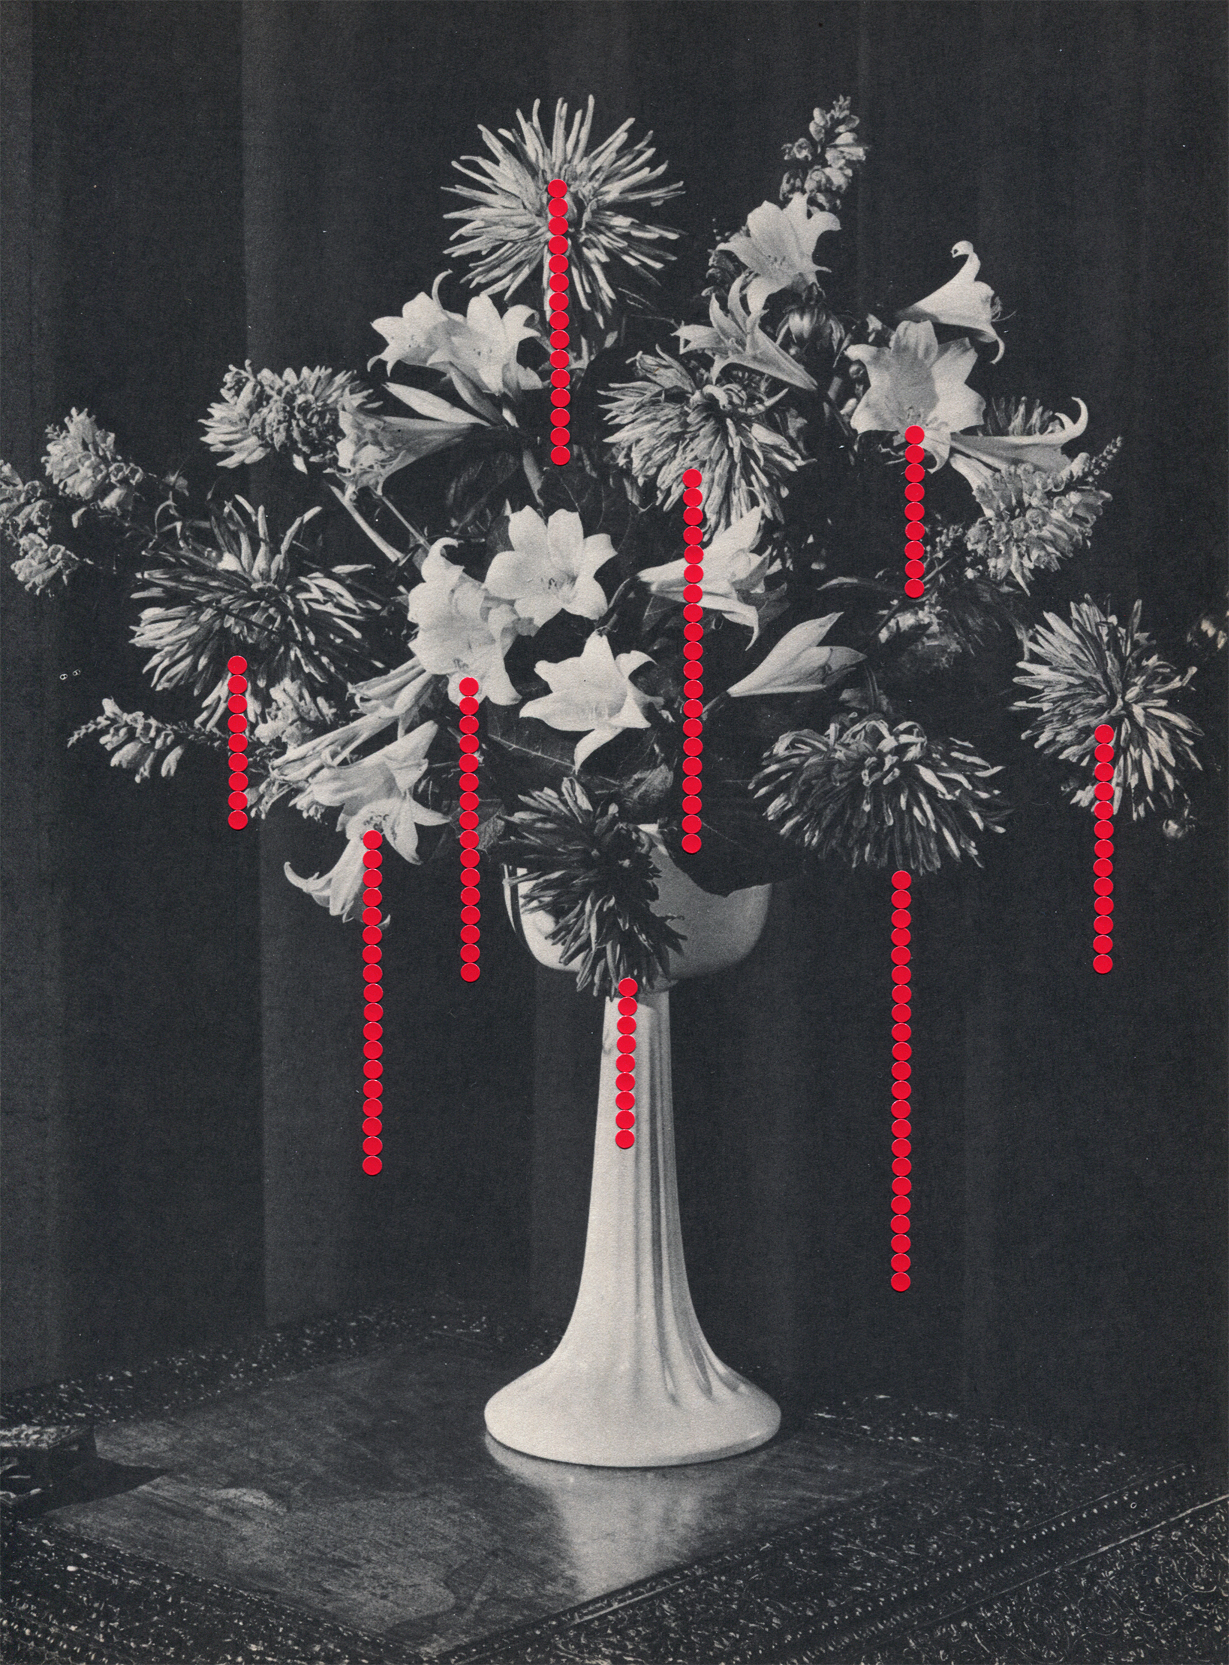 Drips #8, 2019, collage, found paper, dot stickers